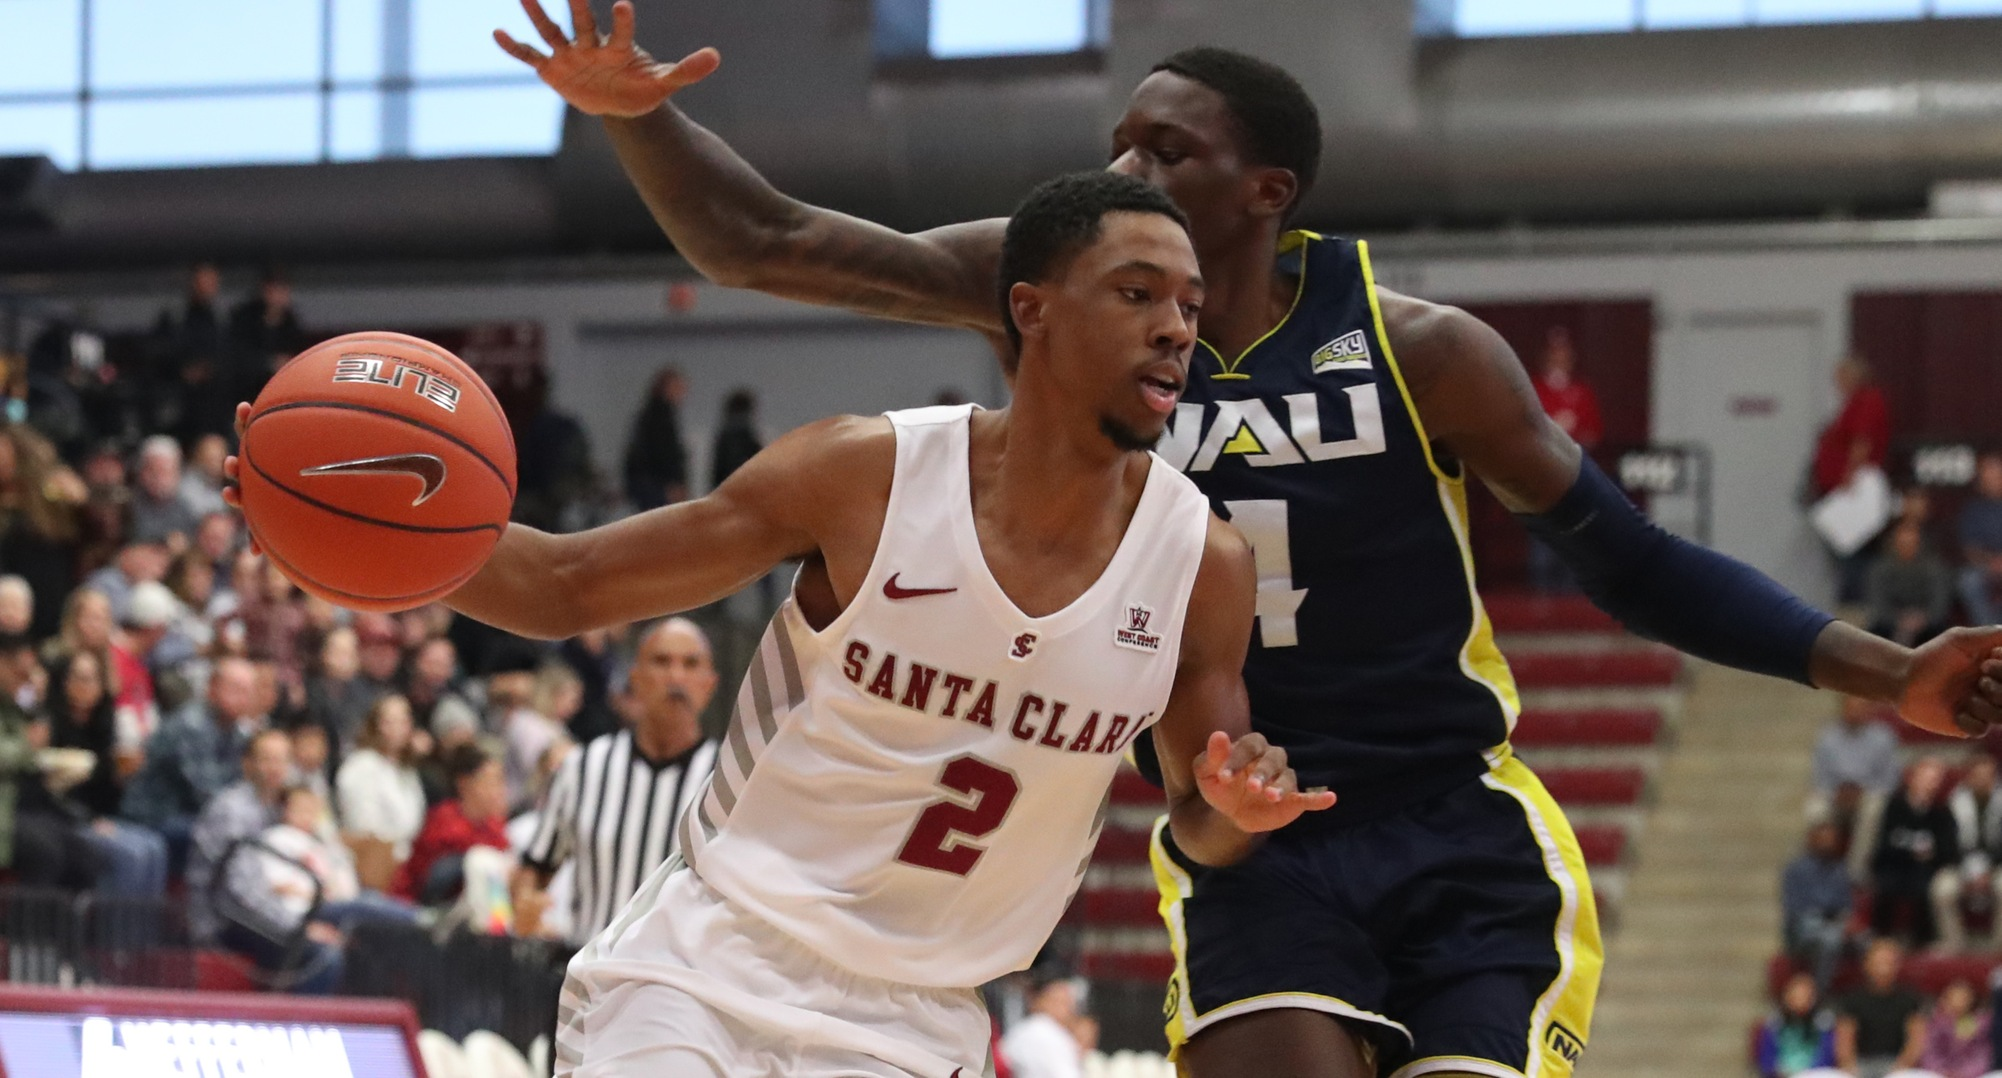 Strong Second Half Sends Men's Basketball Past Northern Arizona, 81-74